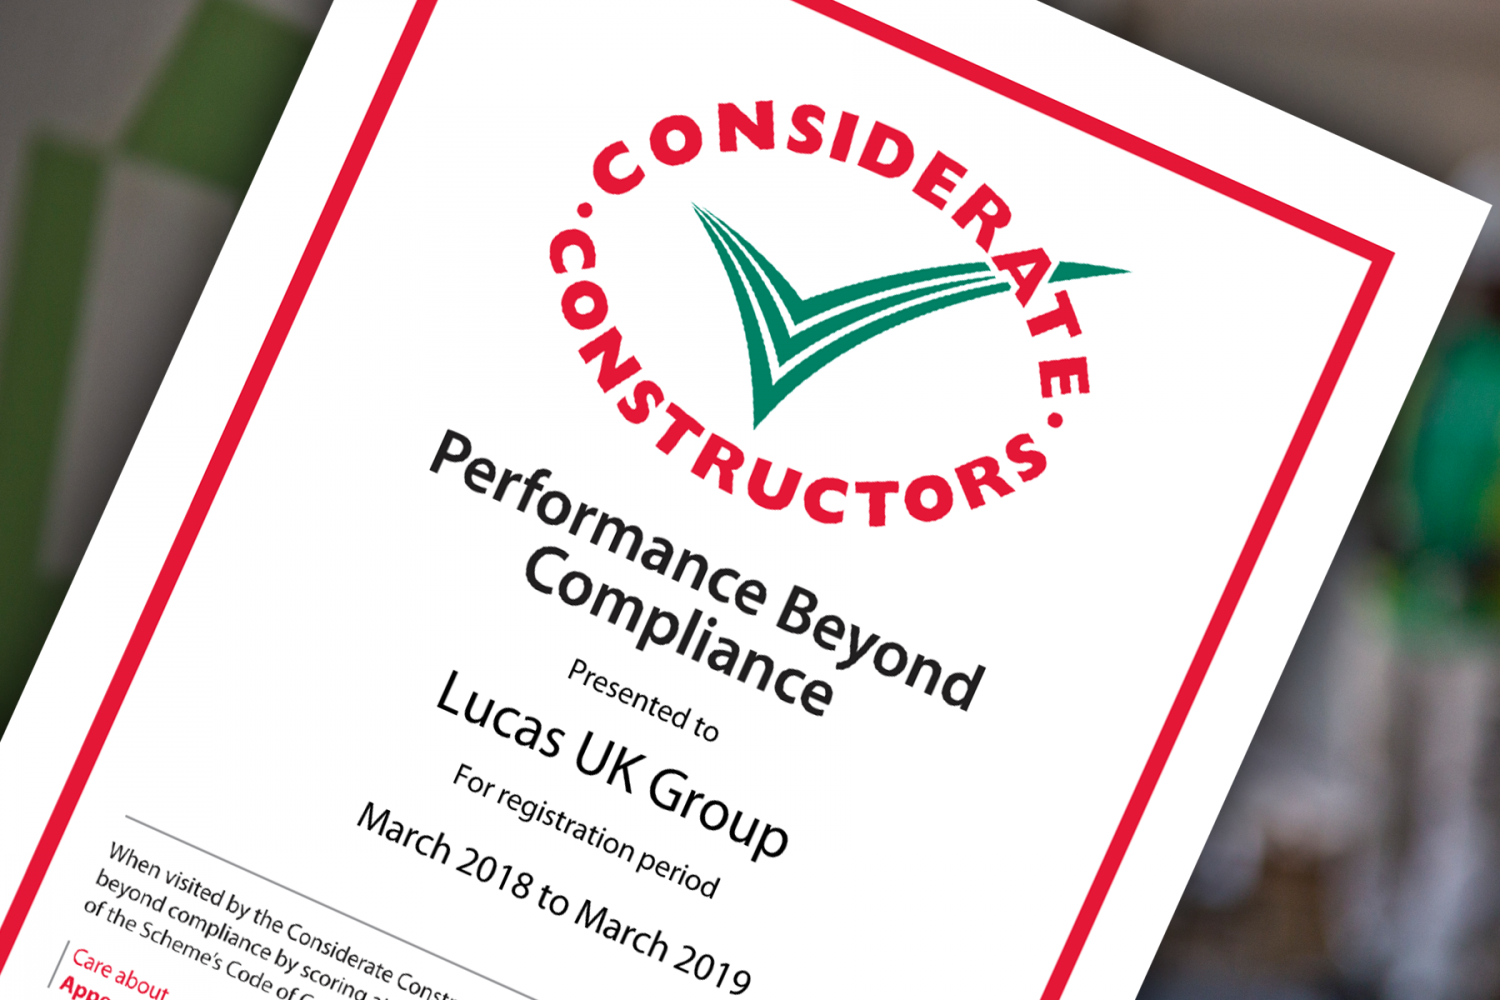 Performance Beyond Compliance Certificate Awarded to Lucas UK Group by Considerate Constructors Scheme